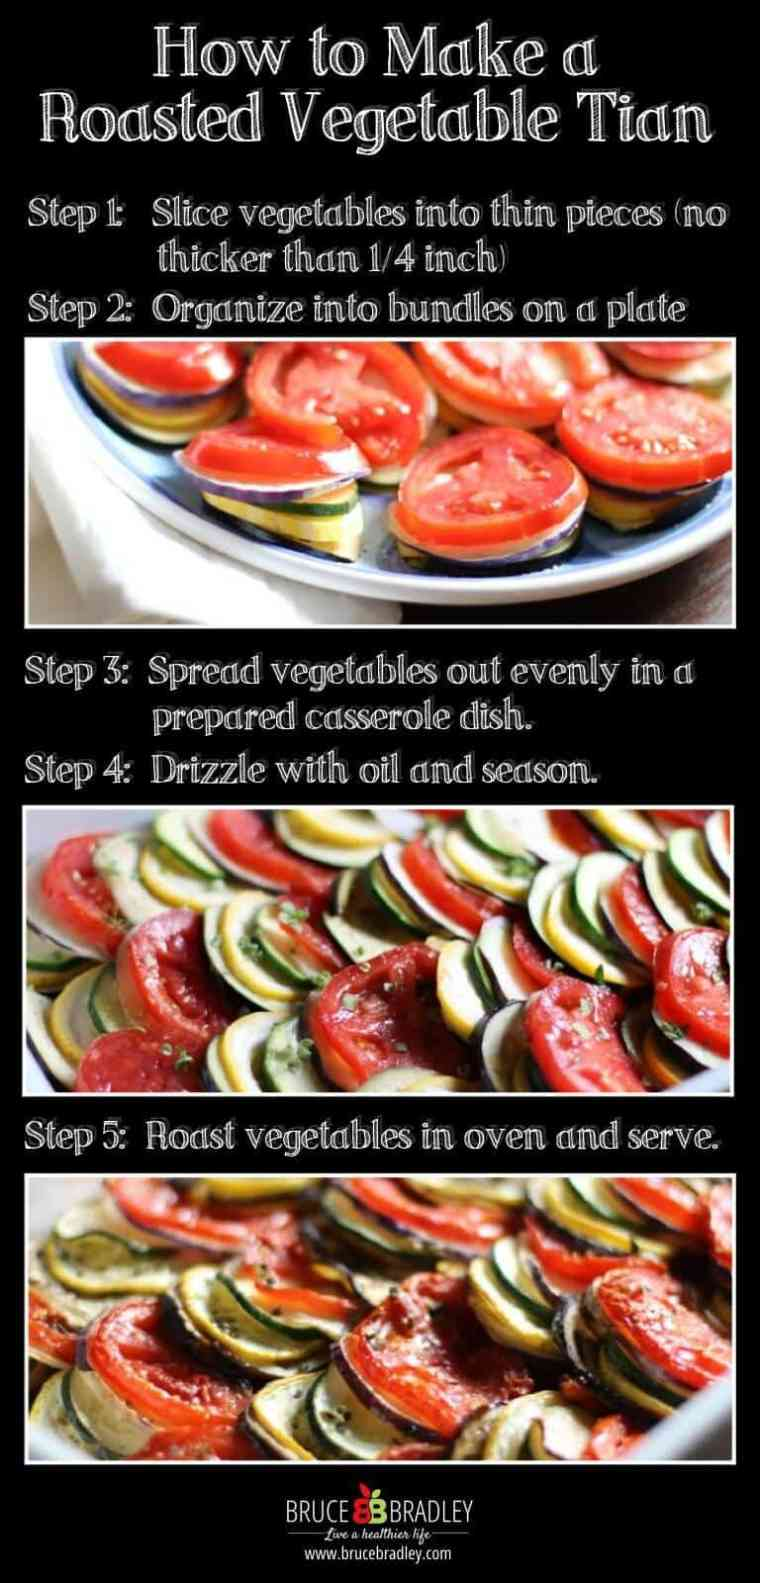 Bruce Bradley's quick, 5-step directions to make a Roasted Vegetable Tian.